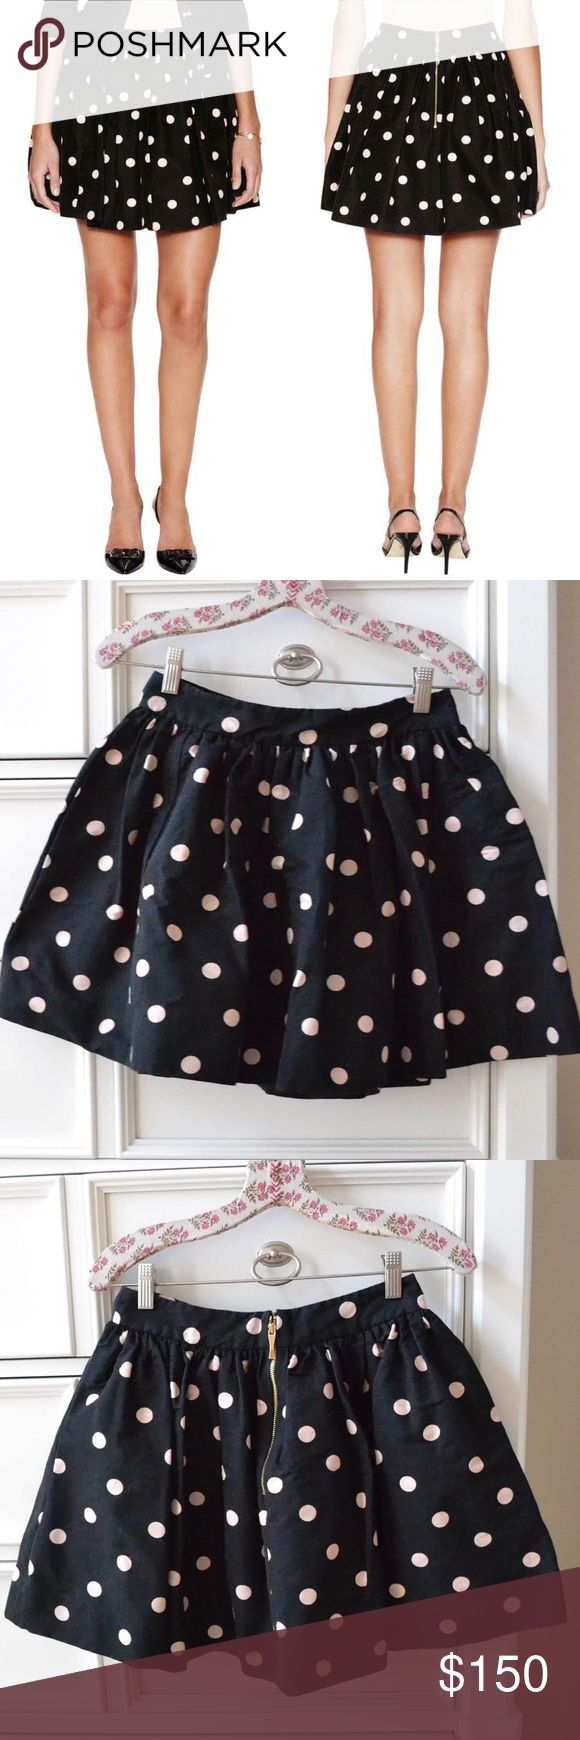 "KATE SPADE Deco Dot Coreen Skirt size 4 $278 Pre-owned, in excellent condition. Bought this from another online seller, but sadly, it is too tight for me! Looking for a size 10 or 12. Designed with a fantastically full silhouette (designers call it the ""cupcake""), the coreen skirt is finished off in delightfully playful polka dots. Made of a luxe silk and cotton blend. Make offers I cannot resist! Please no lowballing, no modeling, and no trades! Thanks for looking! 😊 kate spade Skirts Mini"